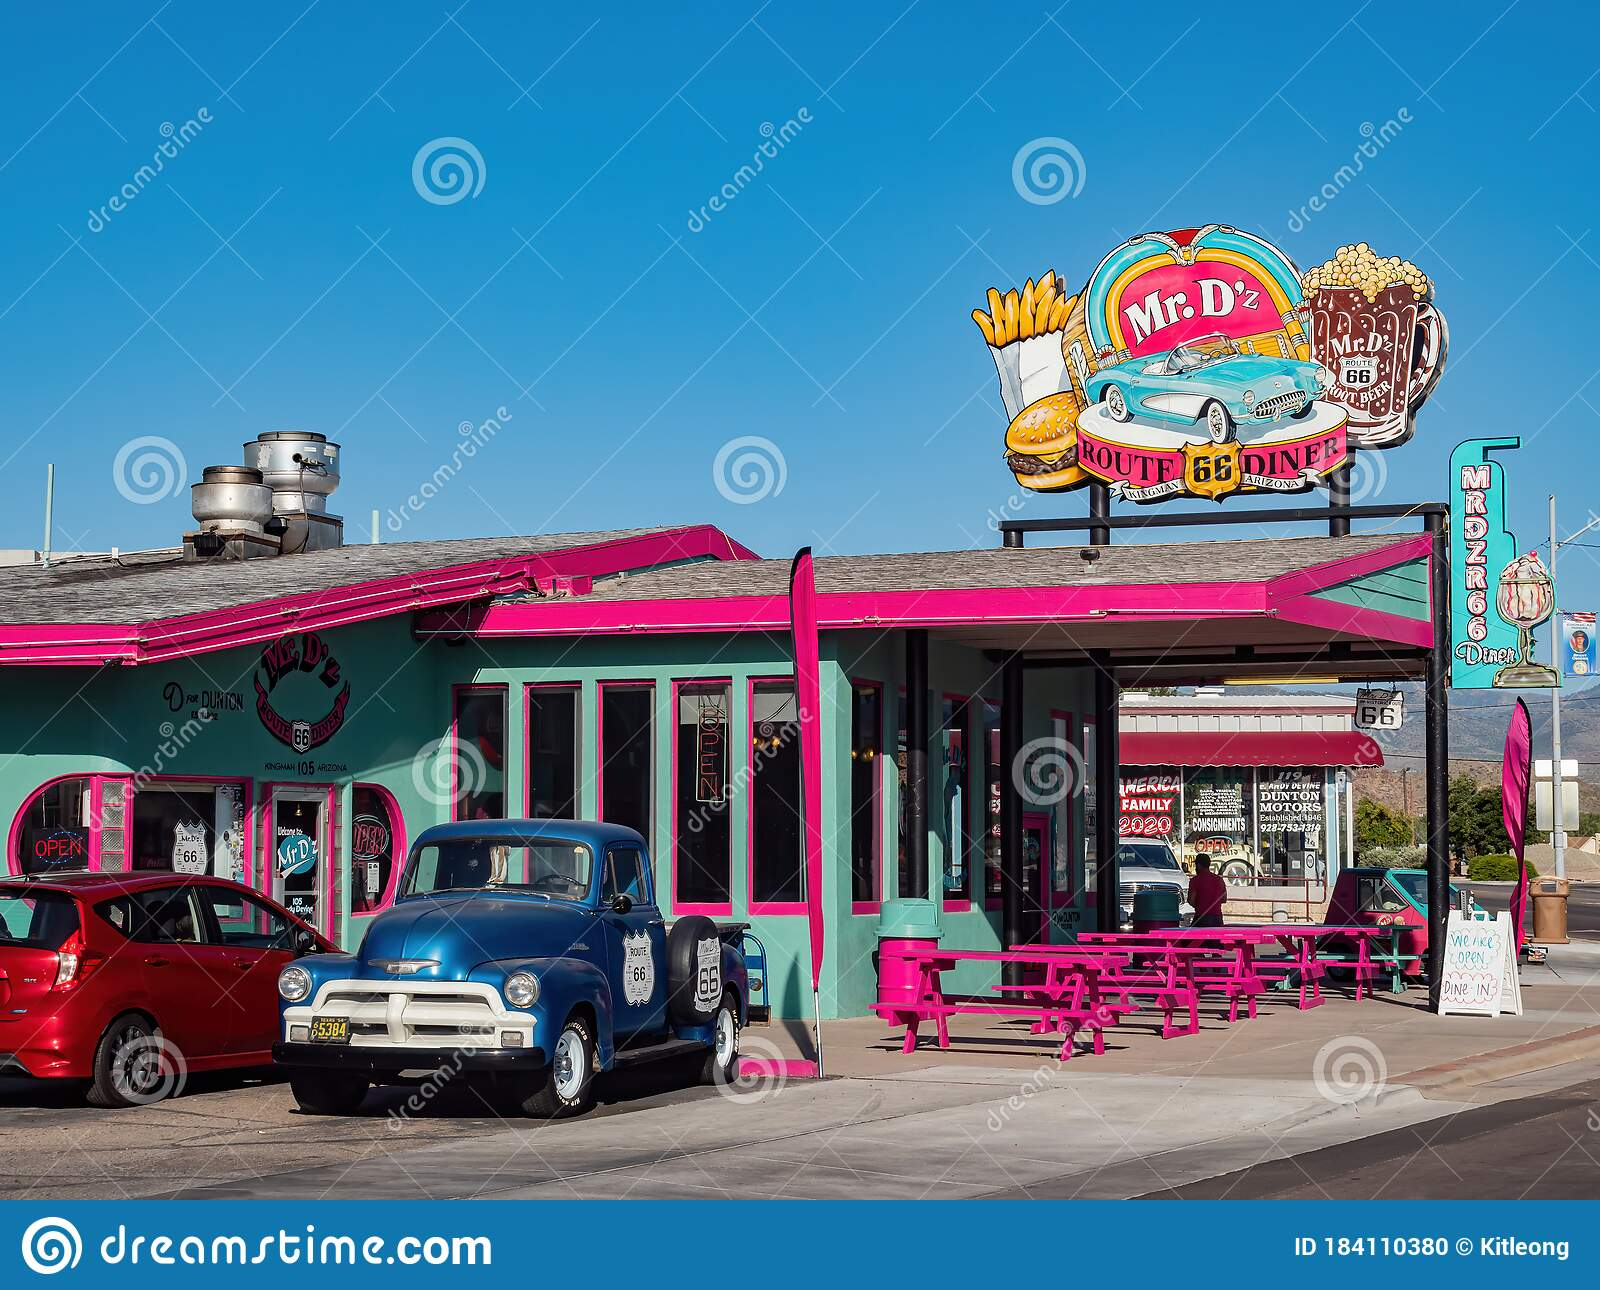 3 634 Diner Exterior Photos Free Royalty Free Stock Photos From Dreamstime